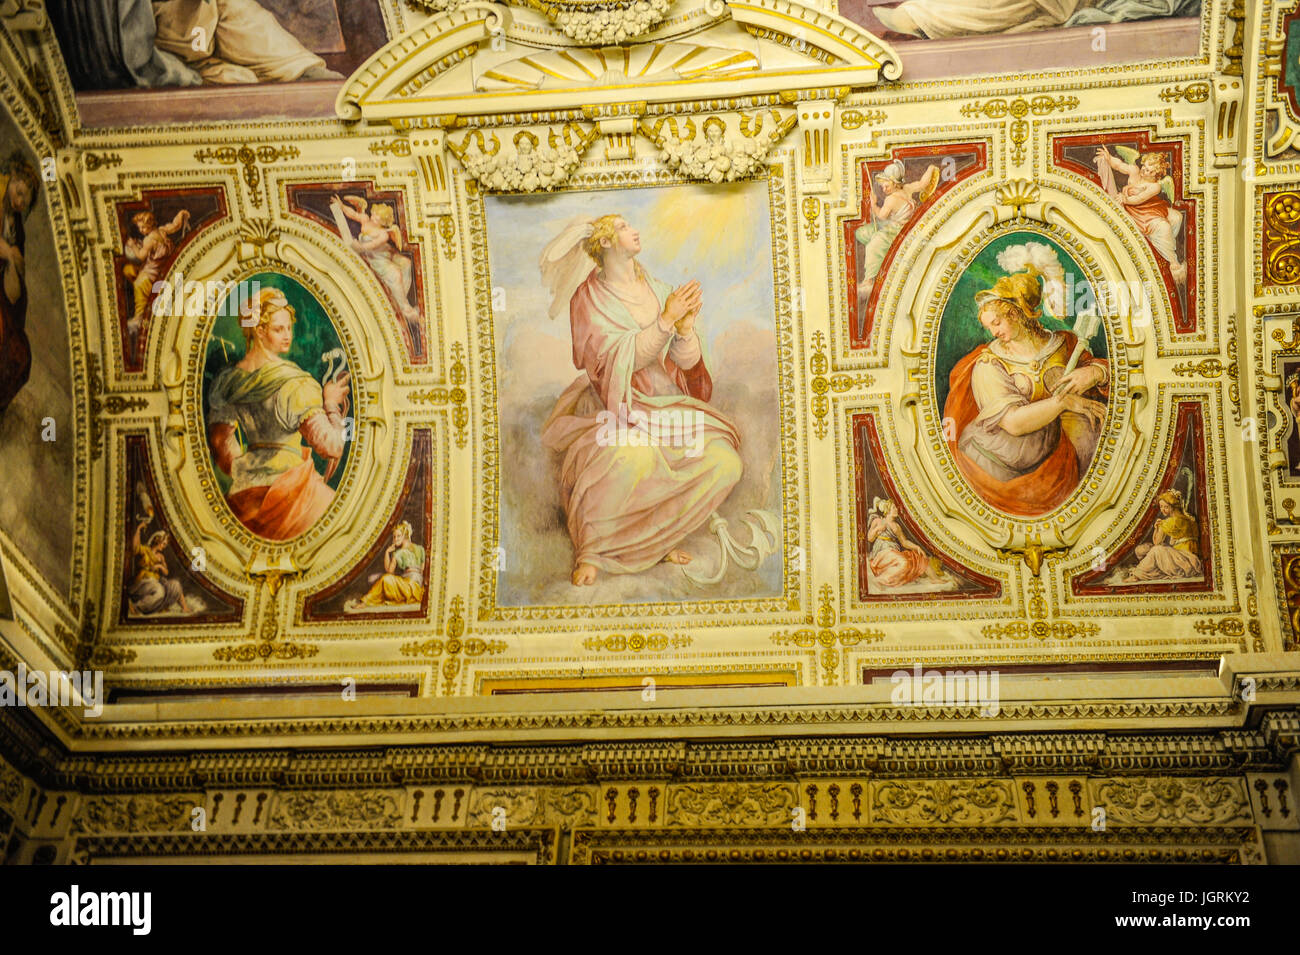 The decorative ceiling along the corridor of Vatican museum, Vatican City, Rome, Italy - Stock Image